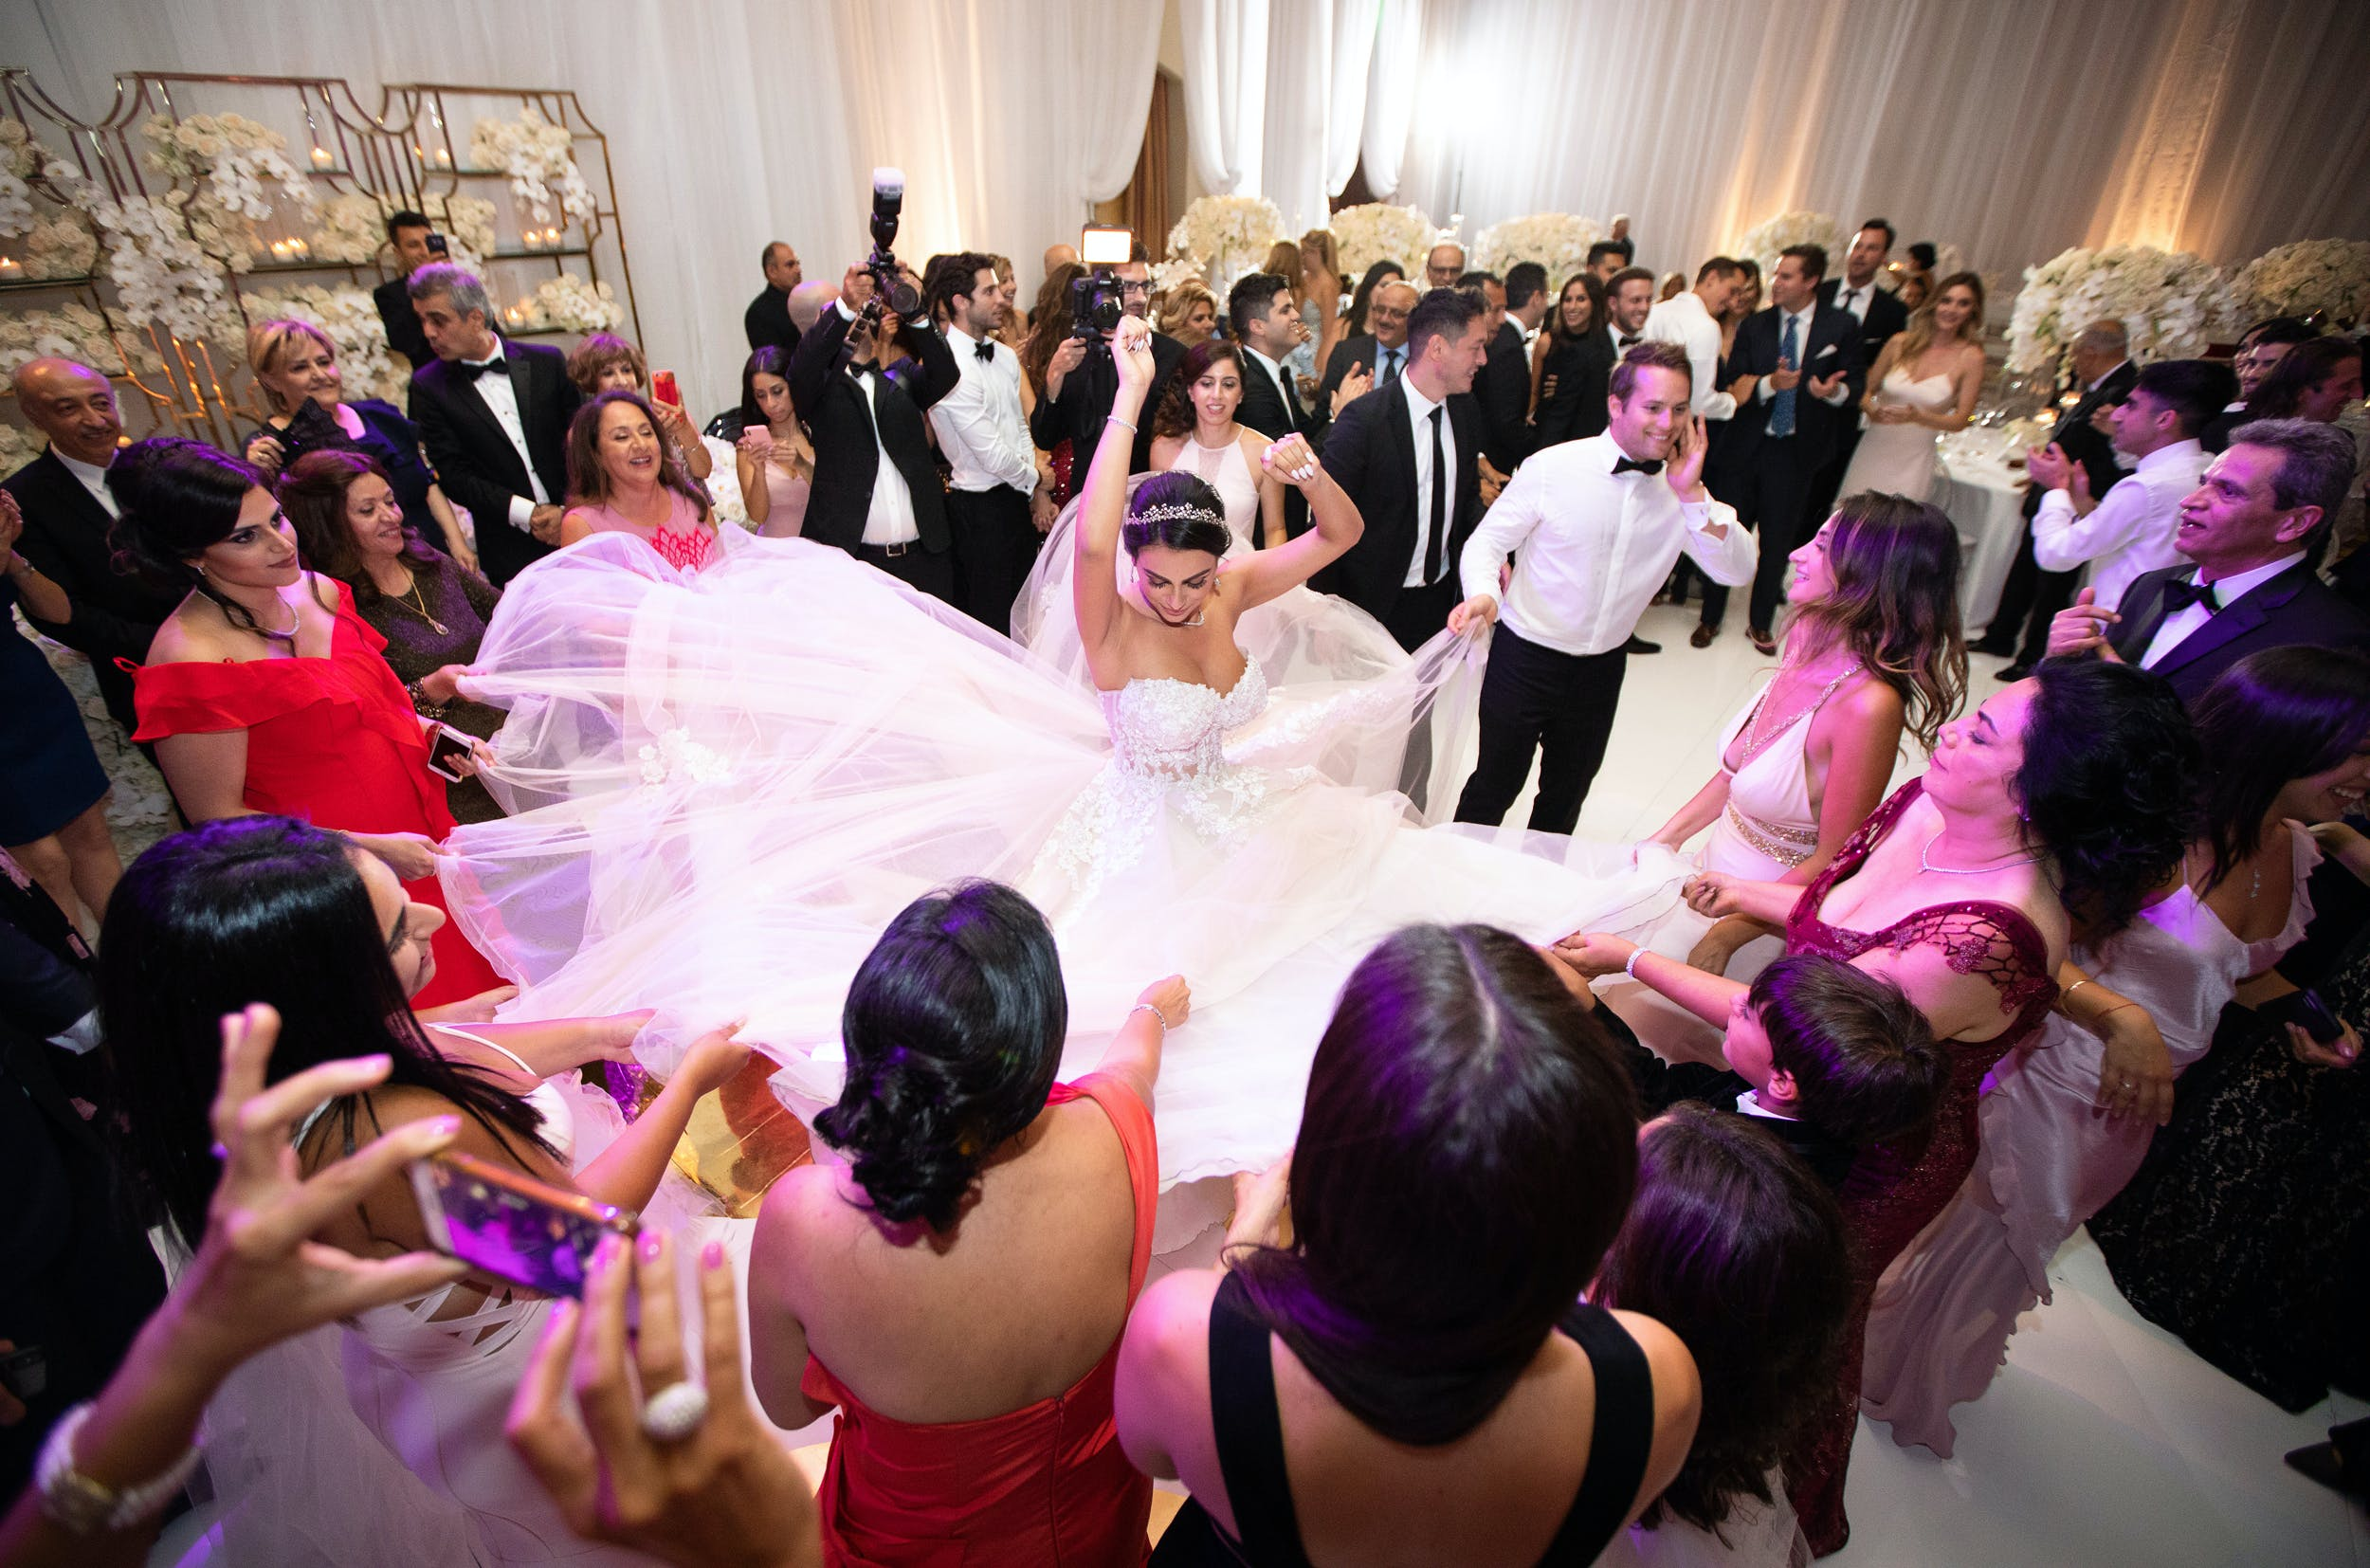 Bride twirling to showcase her dress on dance floor surrounded by wedding guests   PartySlate